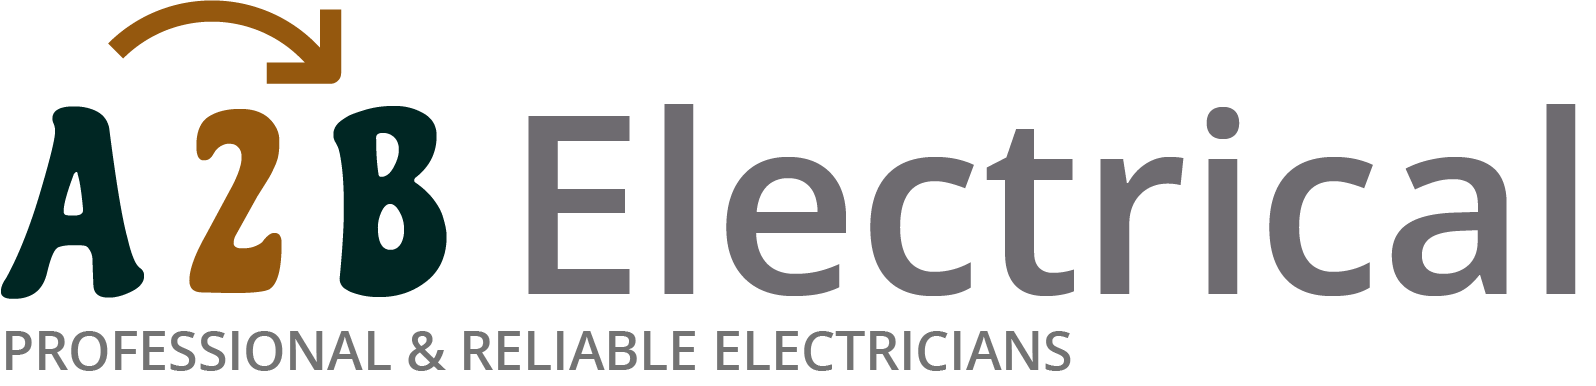 If you have electrical wiring problems in Trowbridge, we can provide an electrician to have a look for you.